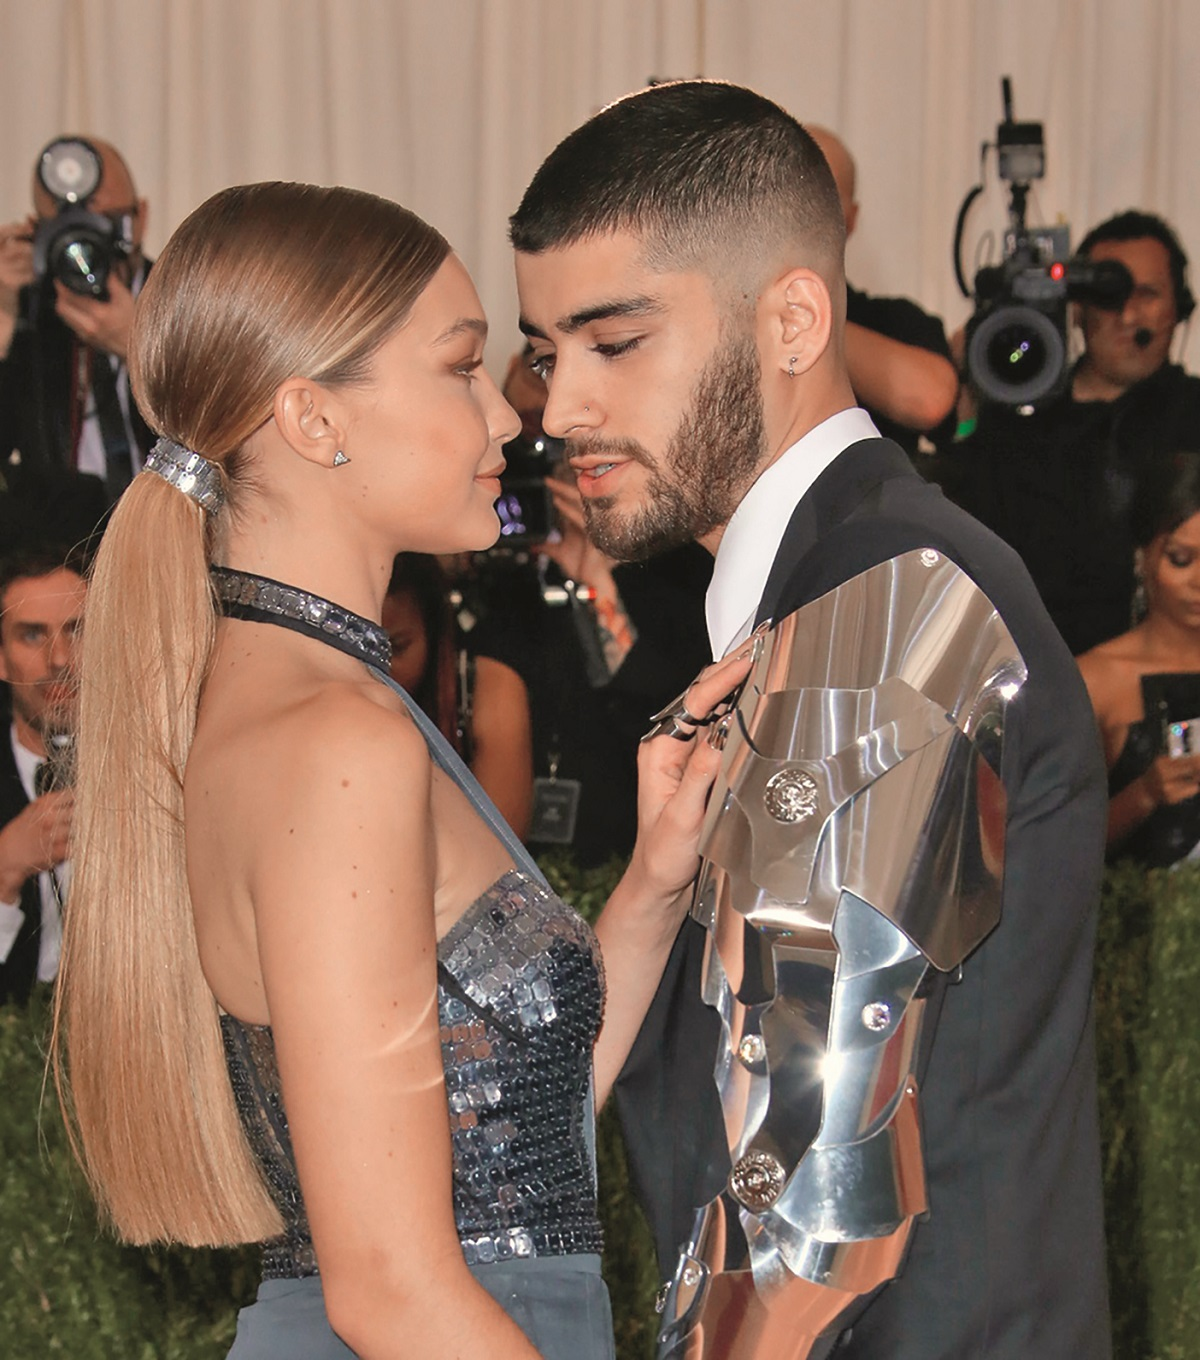 Mandatory Credit: Photo by Matt Baron/BEI/Gigi Hadid and Zayn Malik The Metropolitan Museum of Art's COSTUME INSTITUTE Benefit Celebrating the Opening of Manus x Machina: Fashion in an Age of Technology, Arrivals, The Metropolitan Museum of Art, NYC, New York, America - 02 May 2016,Image: 283256915, License: Rights-managed, Restrictions: , Model Release: no, Credit line: Matt Baron/BEI/Shutterstock / Shutterstock Editorial / Profimedia